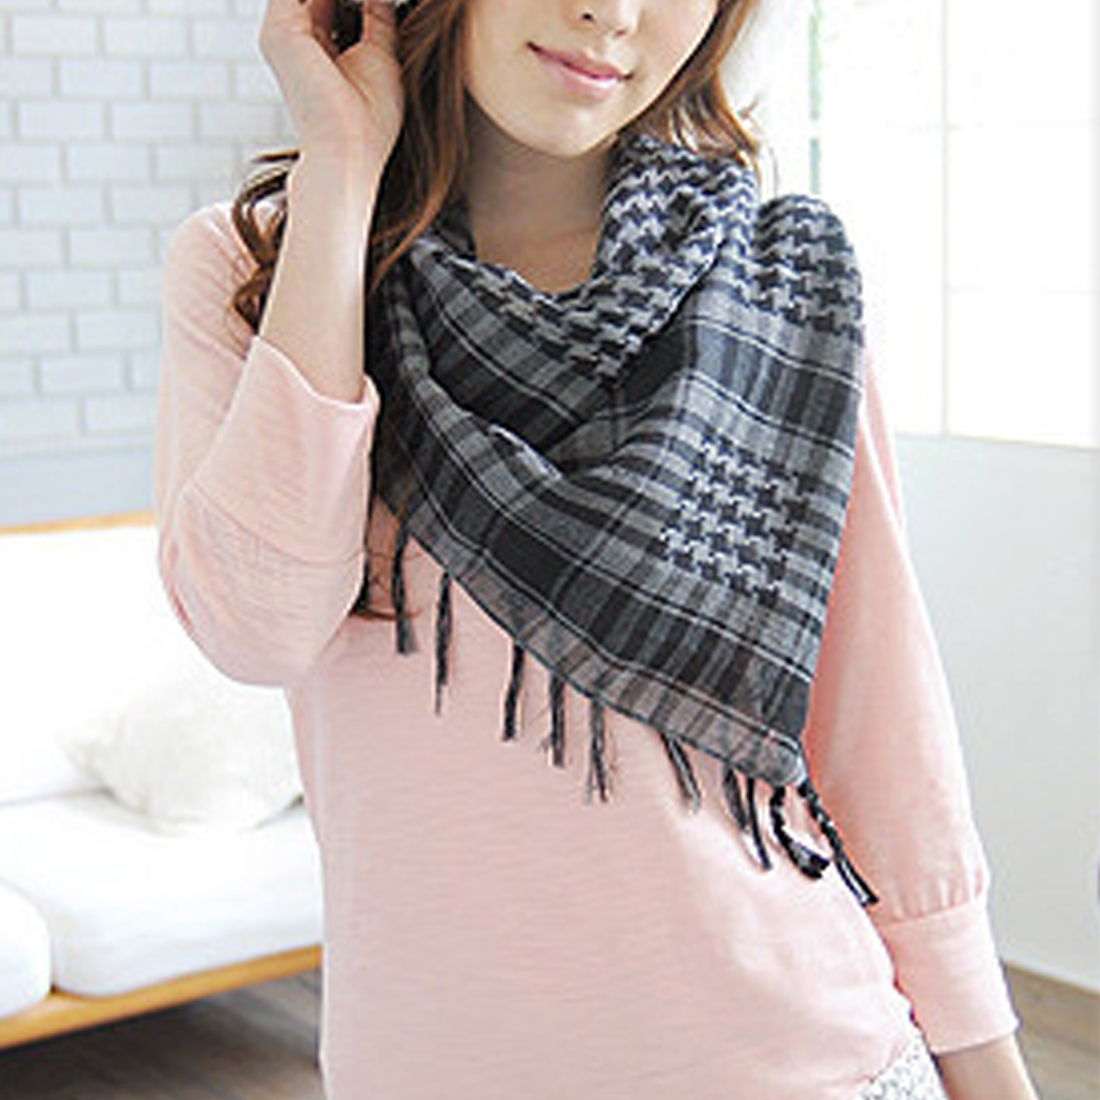 New Arab Military Tactical Scarf Hijab Shawl Kafiya Wrap Hot Grid Scarves For Female Male Gifts Fringed Houndstooth Square Scarf in Women 39 s Scarves from Apparel Accessories